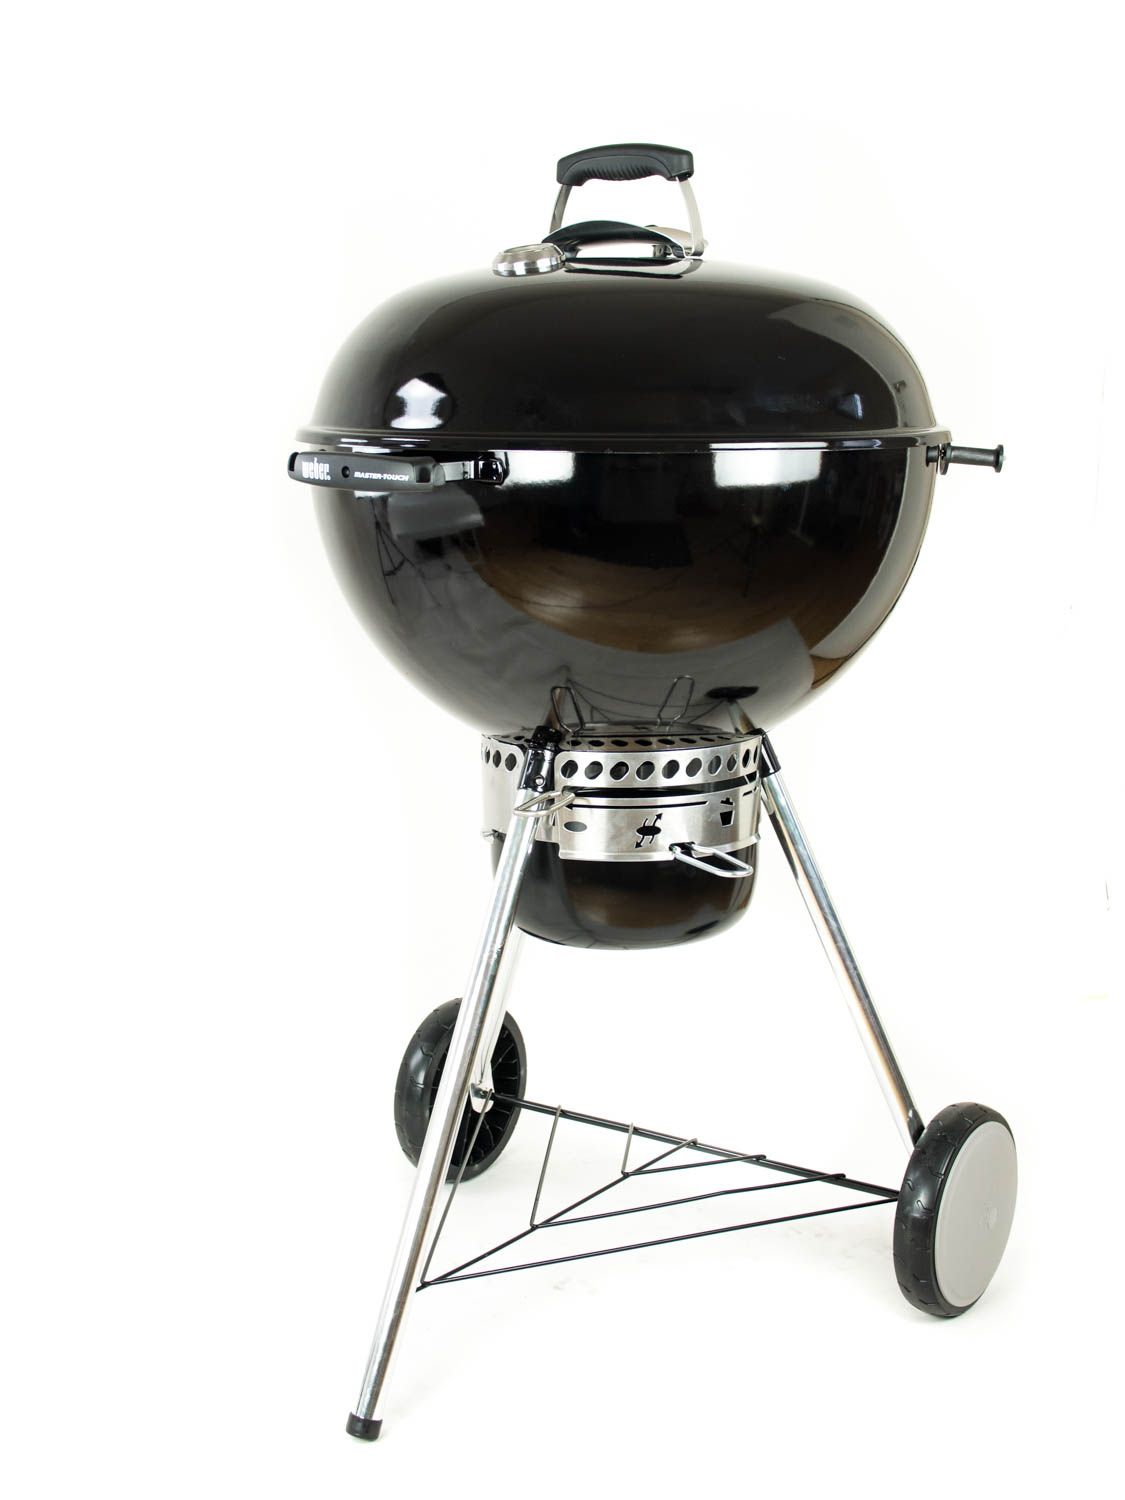 weber master touch gbs 57cm schwarz holzkohlegrill ohne kohlek rbe ebay. Black Bedroom Furniture Sets. Home Design Ideas